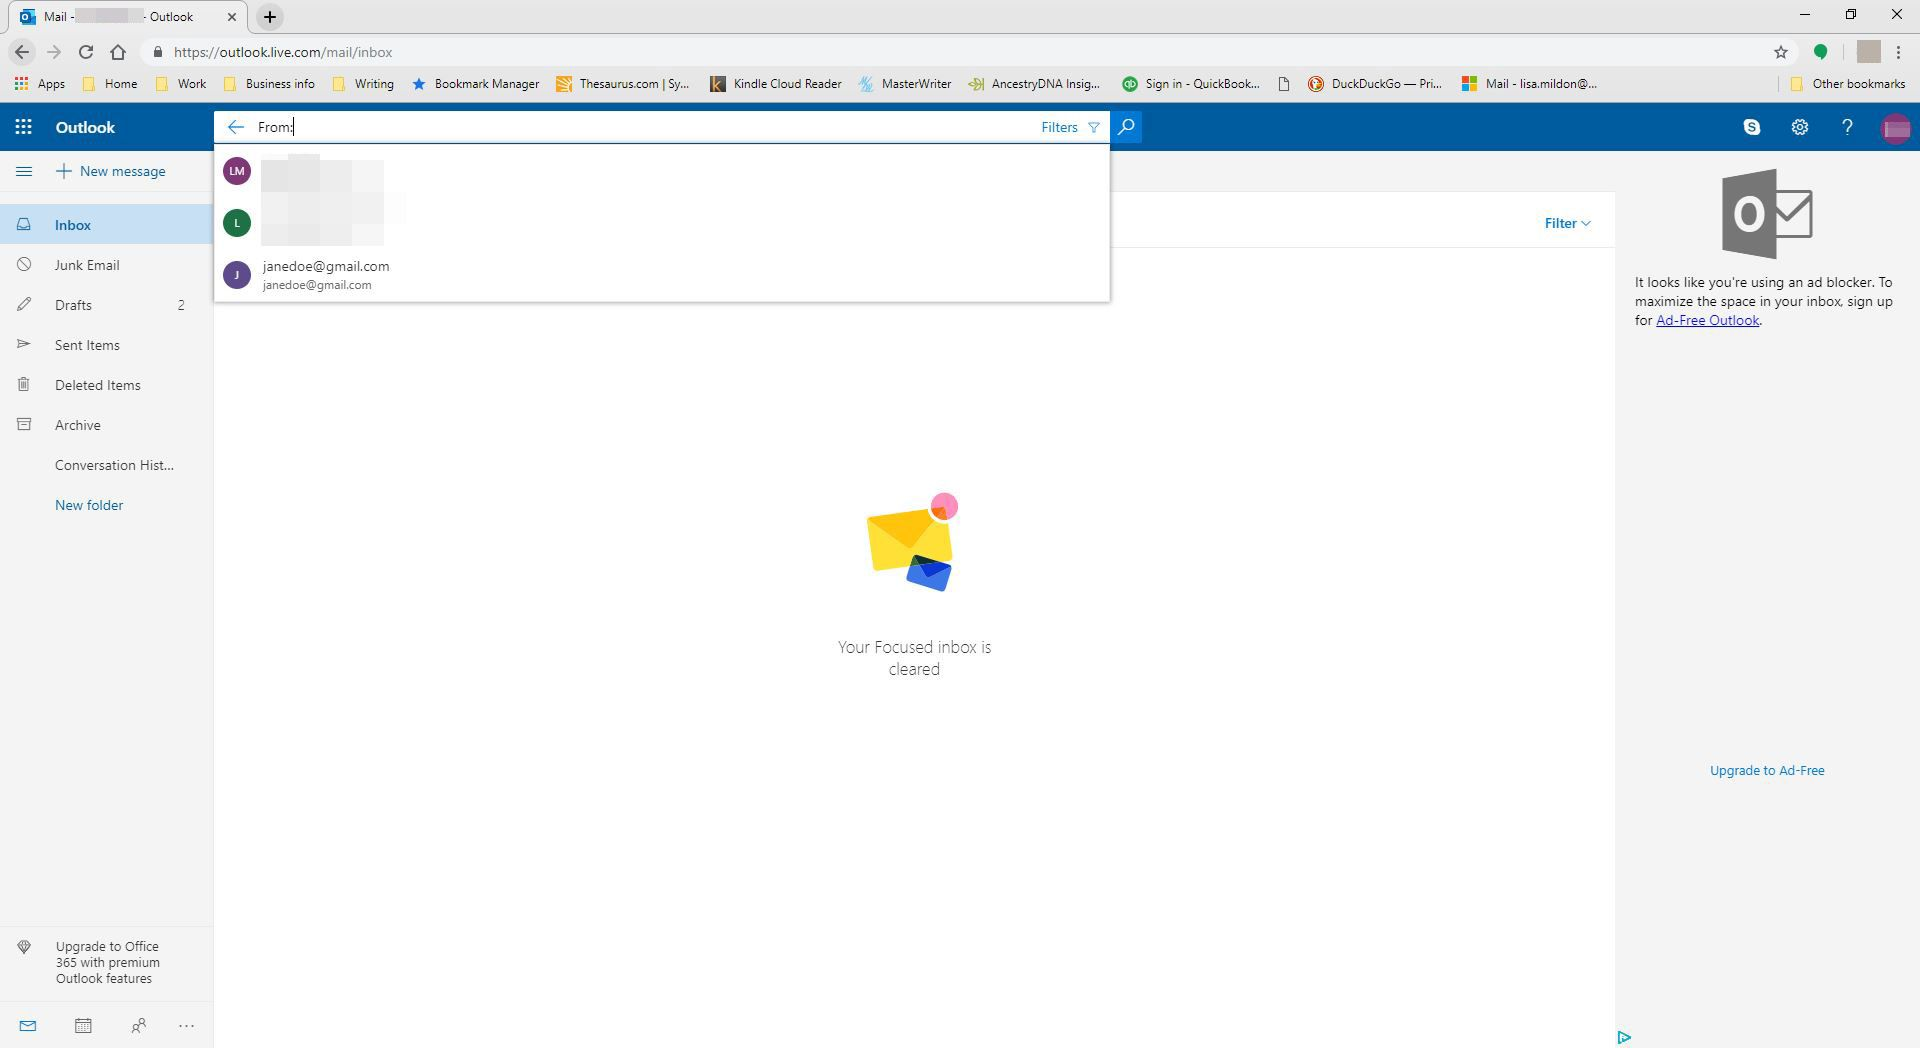 Searching for a specific email in Outlook.com